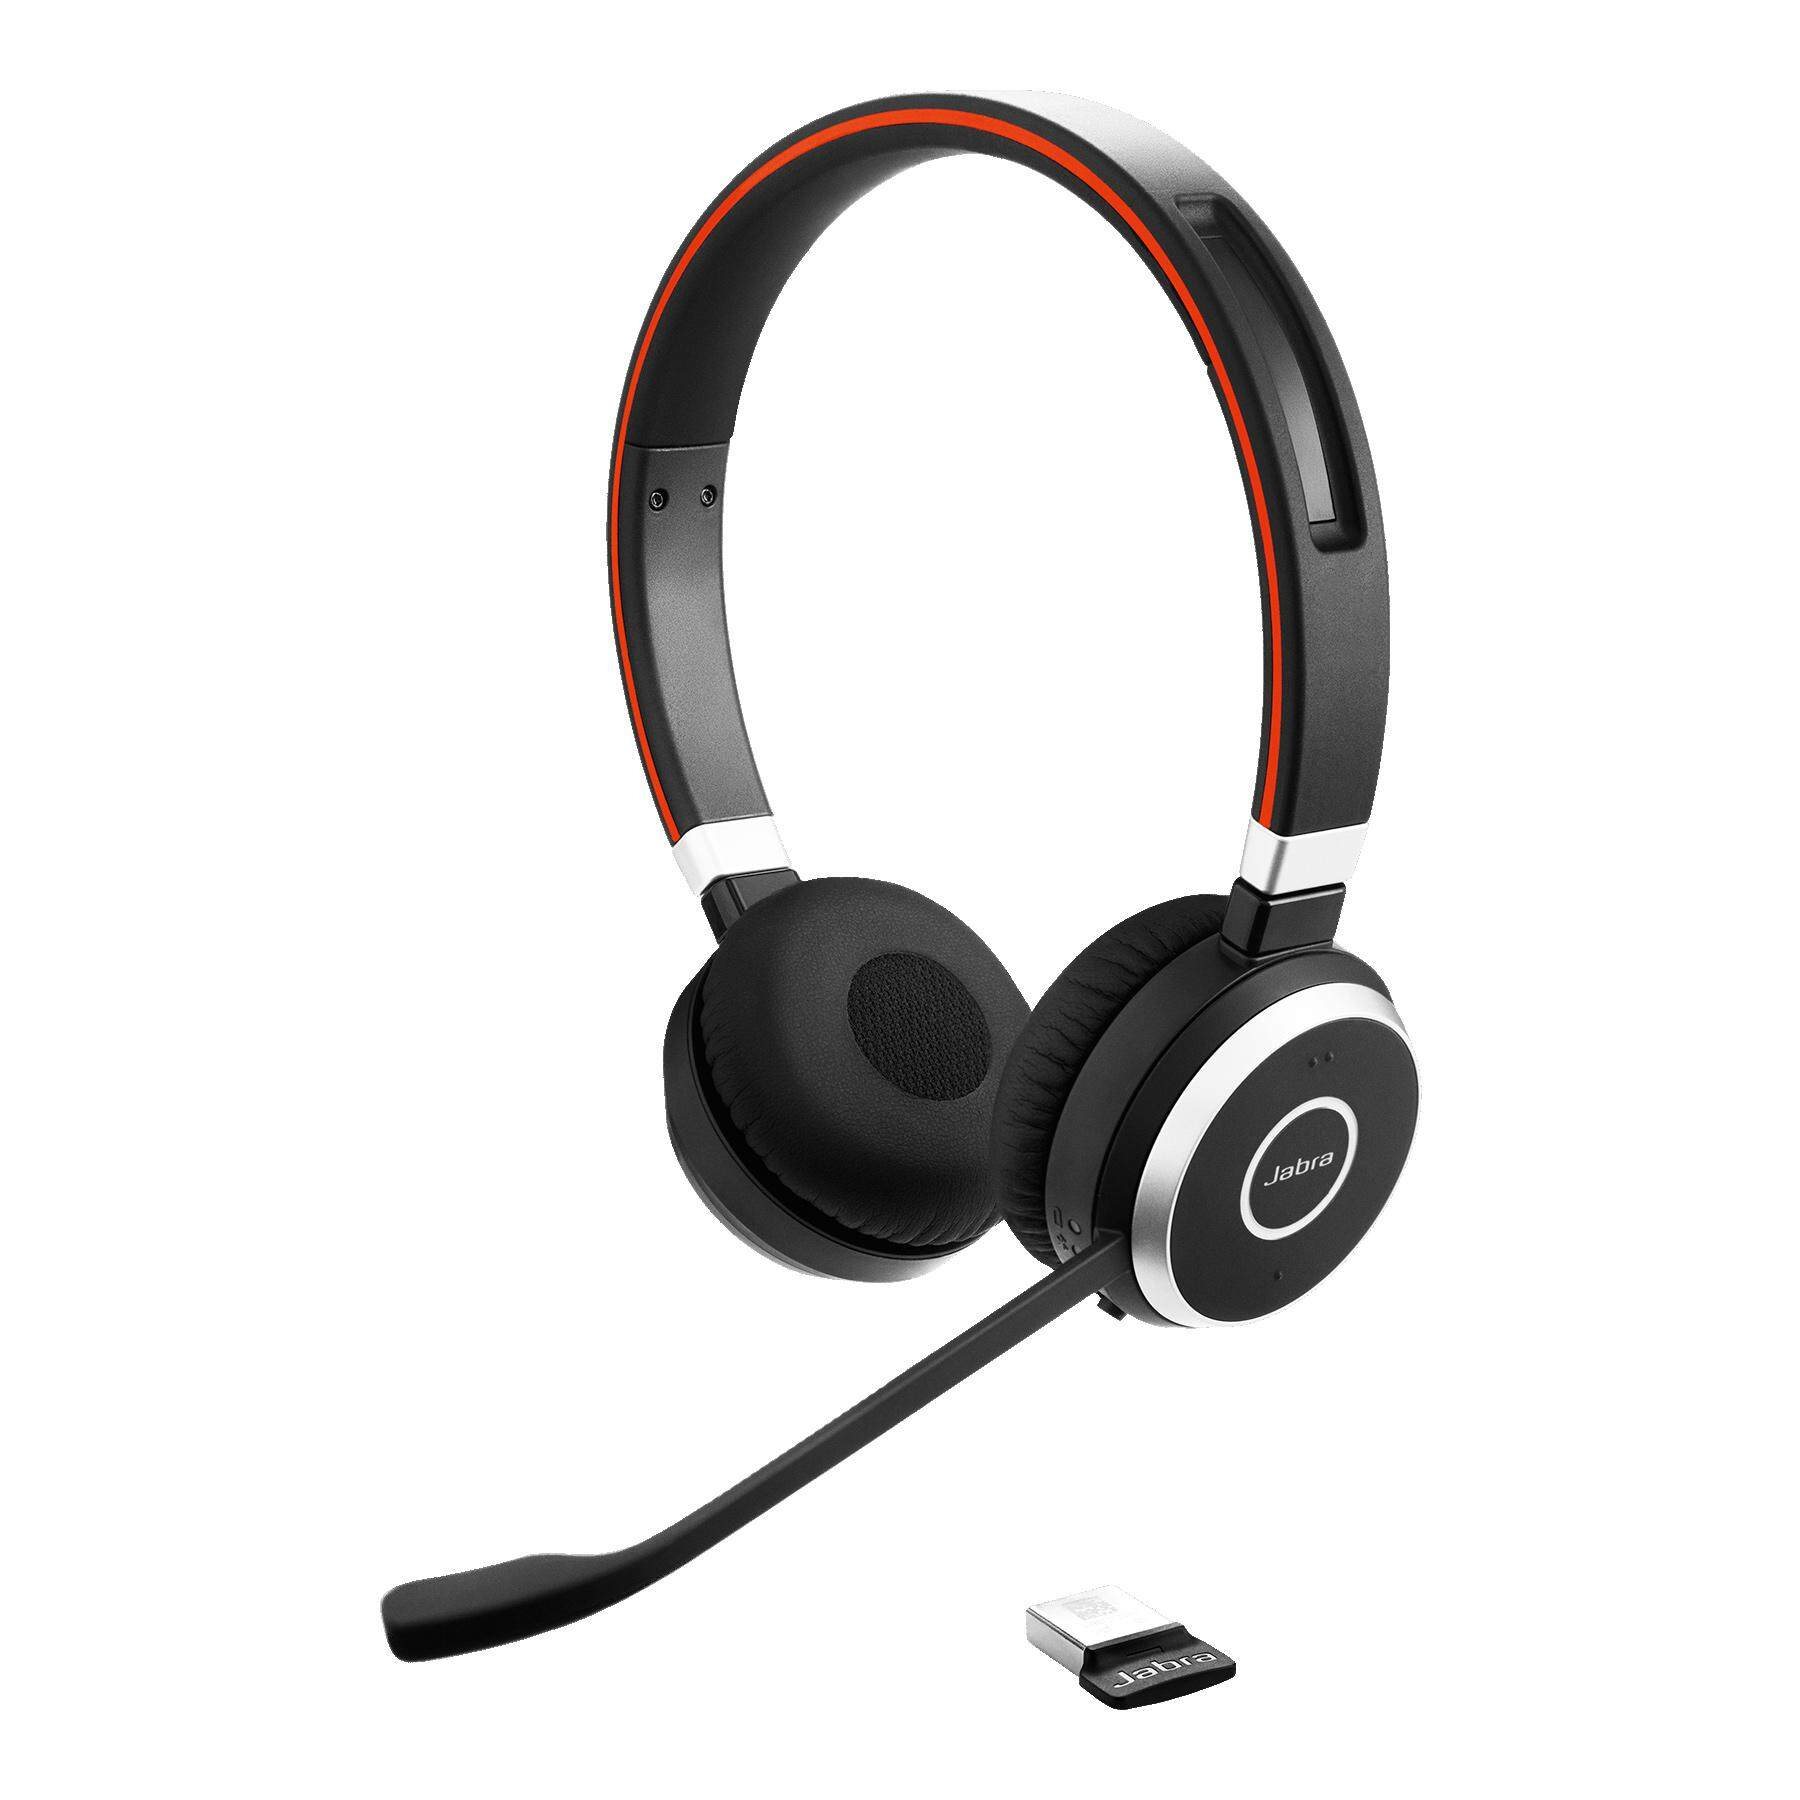 Jabra Evolve 65 MS Stereo Wireless Bluetooth Headset / Music Headphones Includes Charging Stand & Link 360